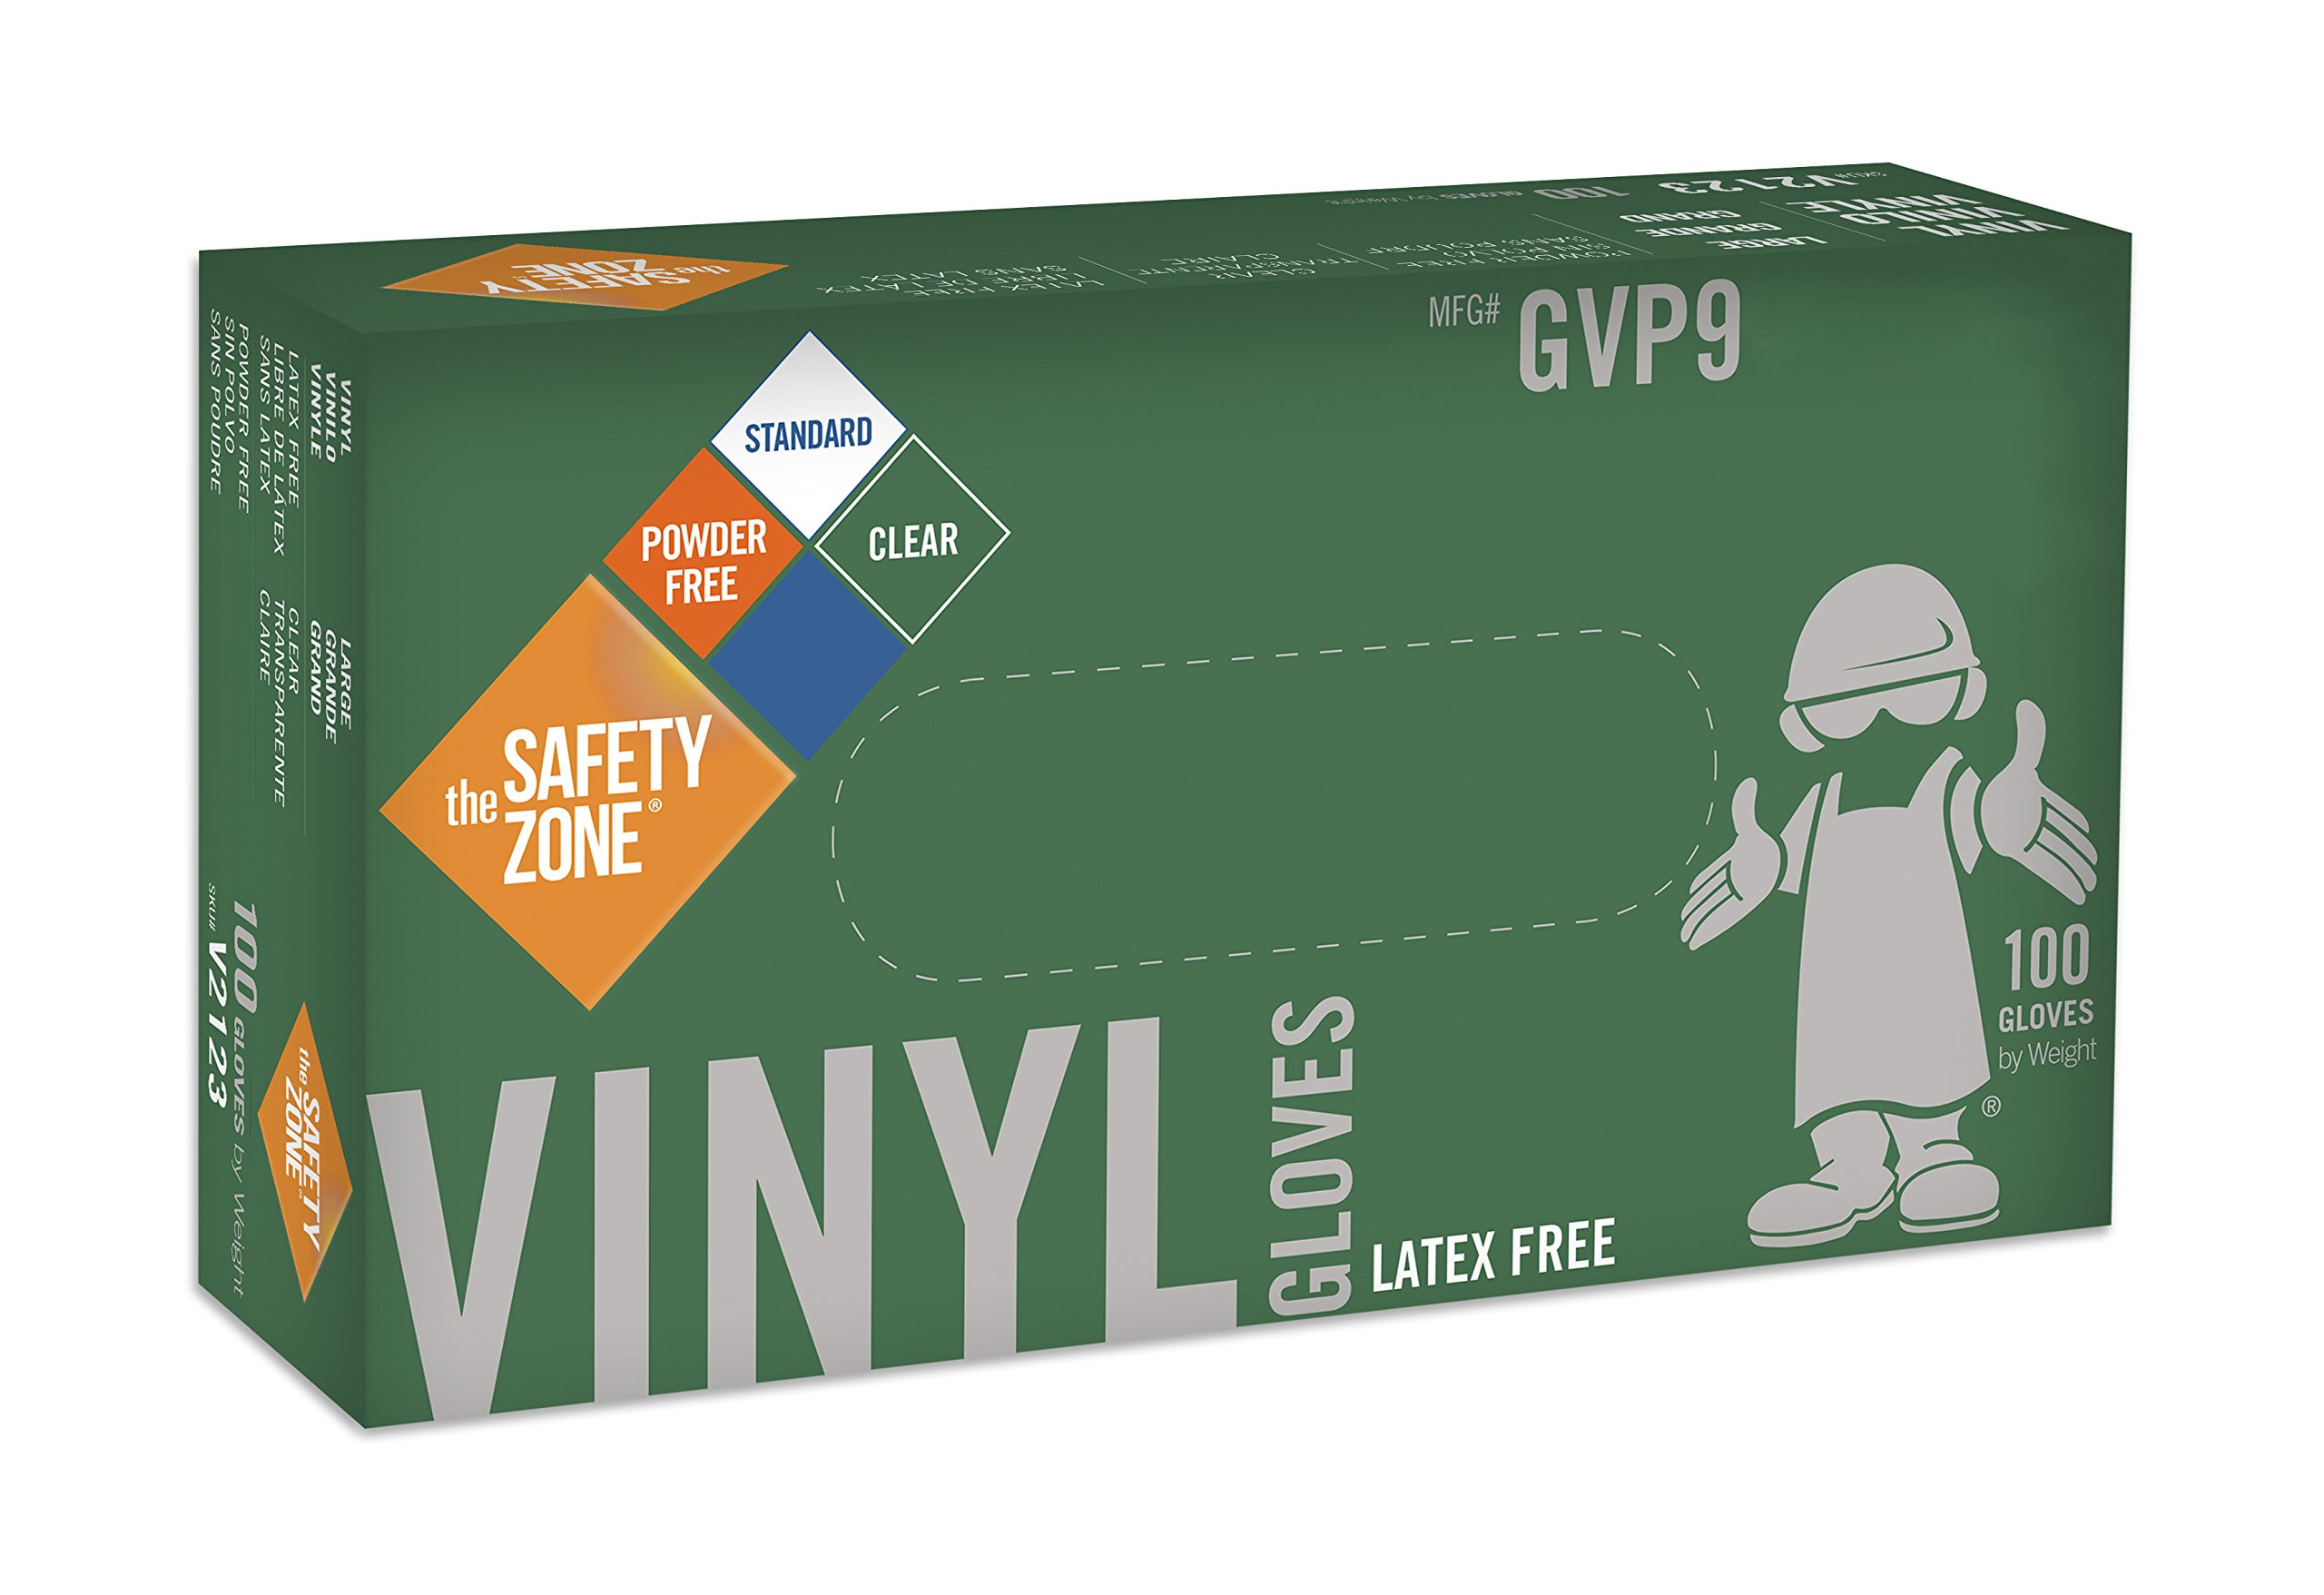 Disposable Vinyl Gloves - Powder Free, Clear, Latex Free and Allergy Free, Plastic, Work, Food Service, Cleaning, Wholesale Cheap, Size Small (Case of 1000)